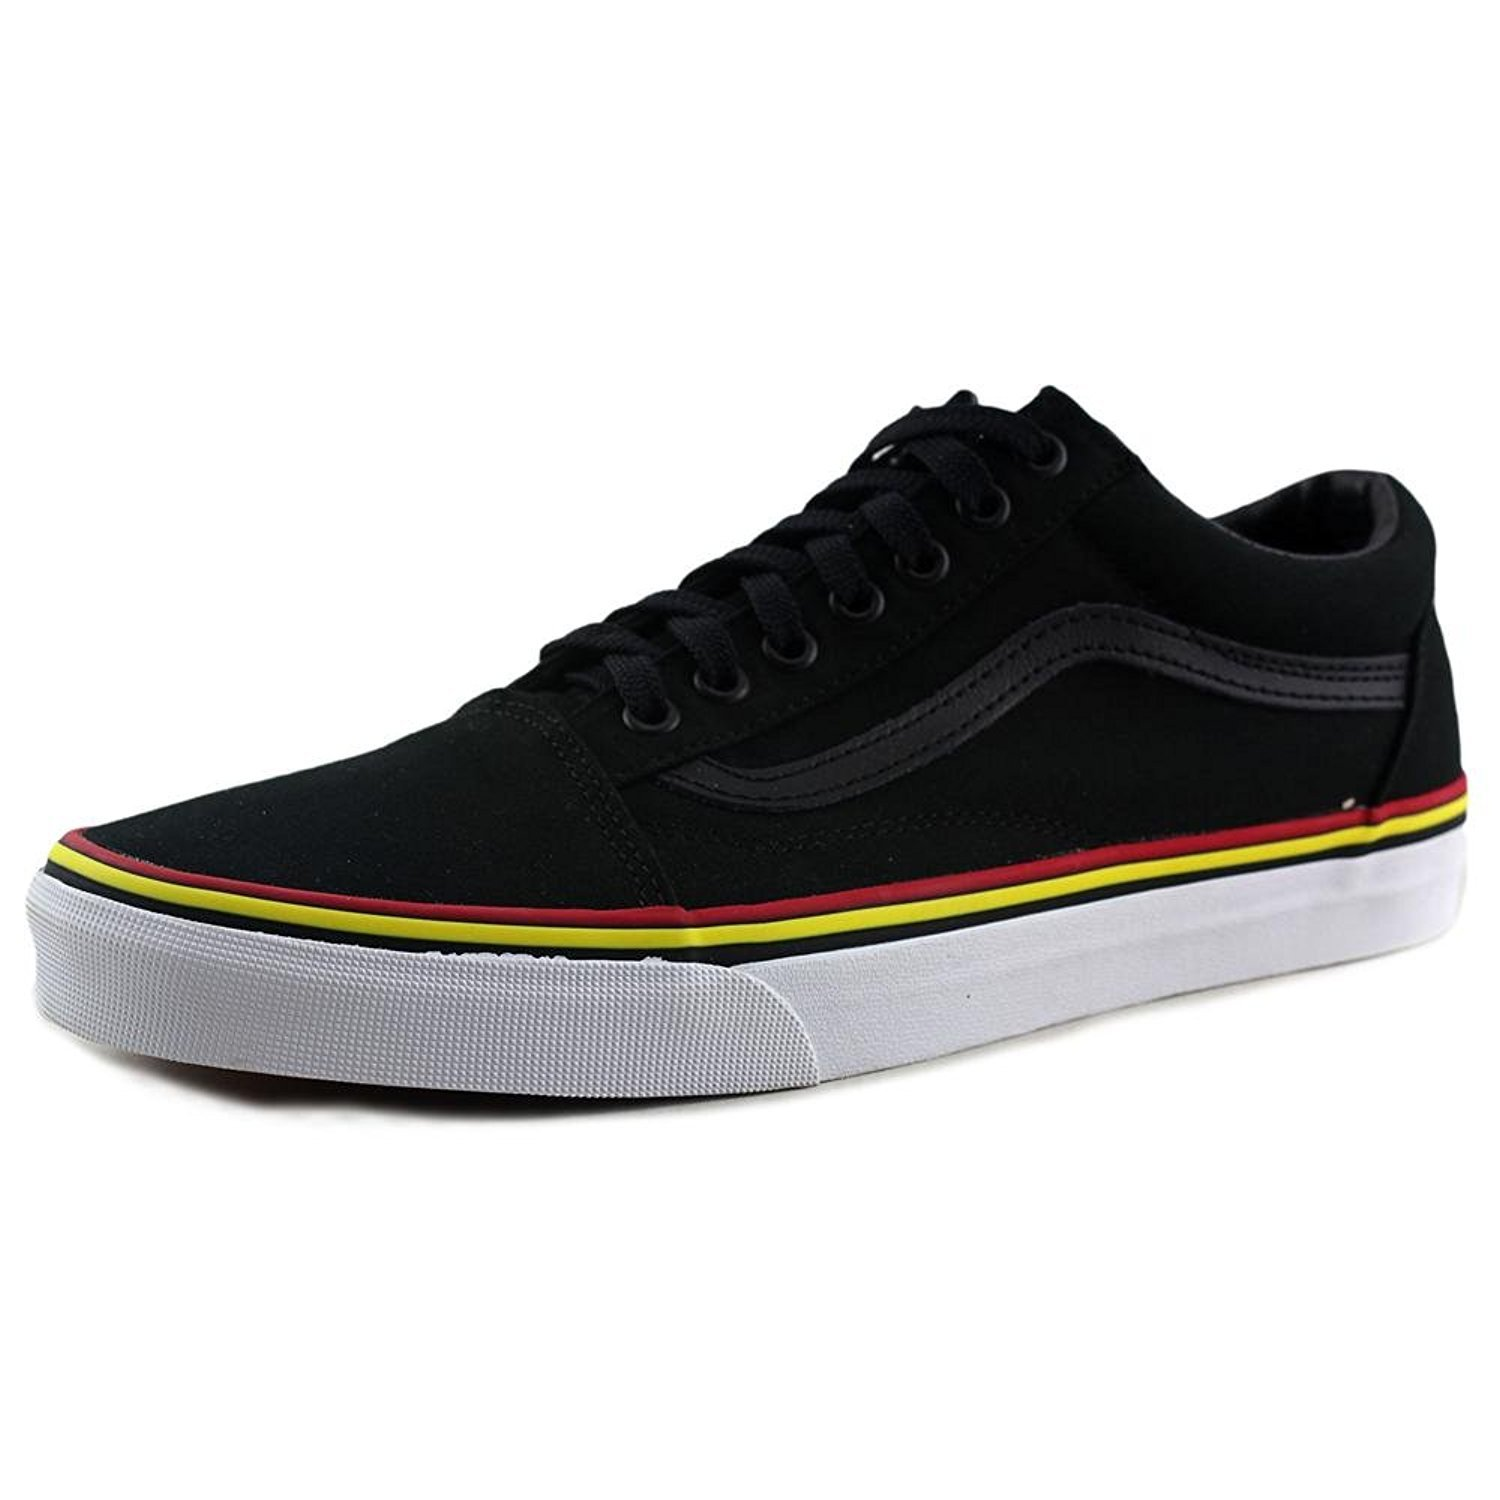 86a9982353 Galleon - VANS Old Skool Unisex Shoes Solstice 2016 Black  Red  Yellow  Fashion Sneaker (11 Men  12.5 Women)